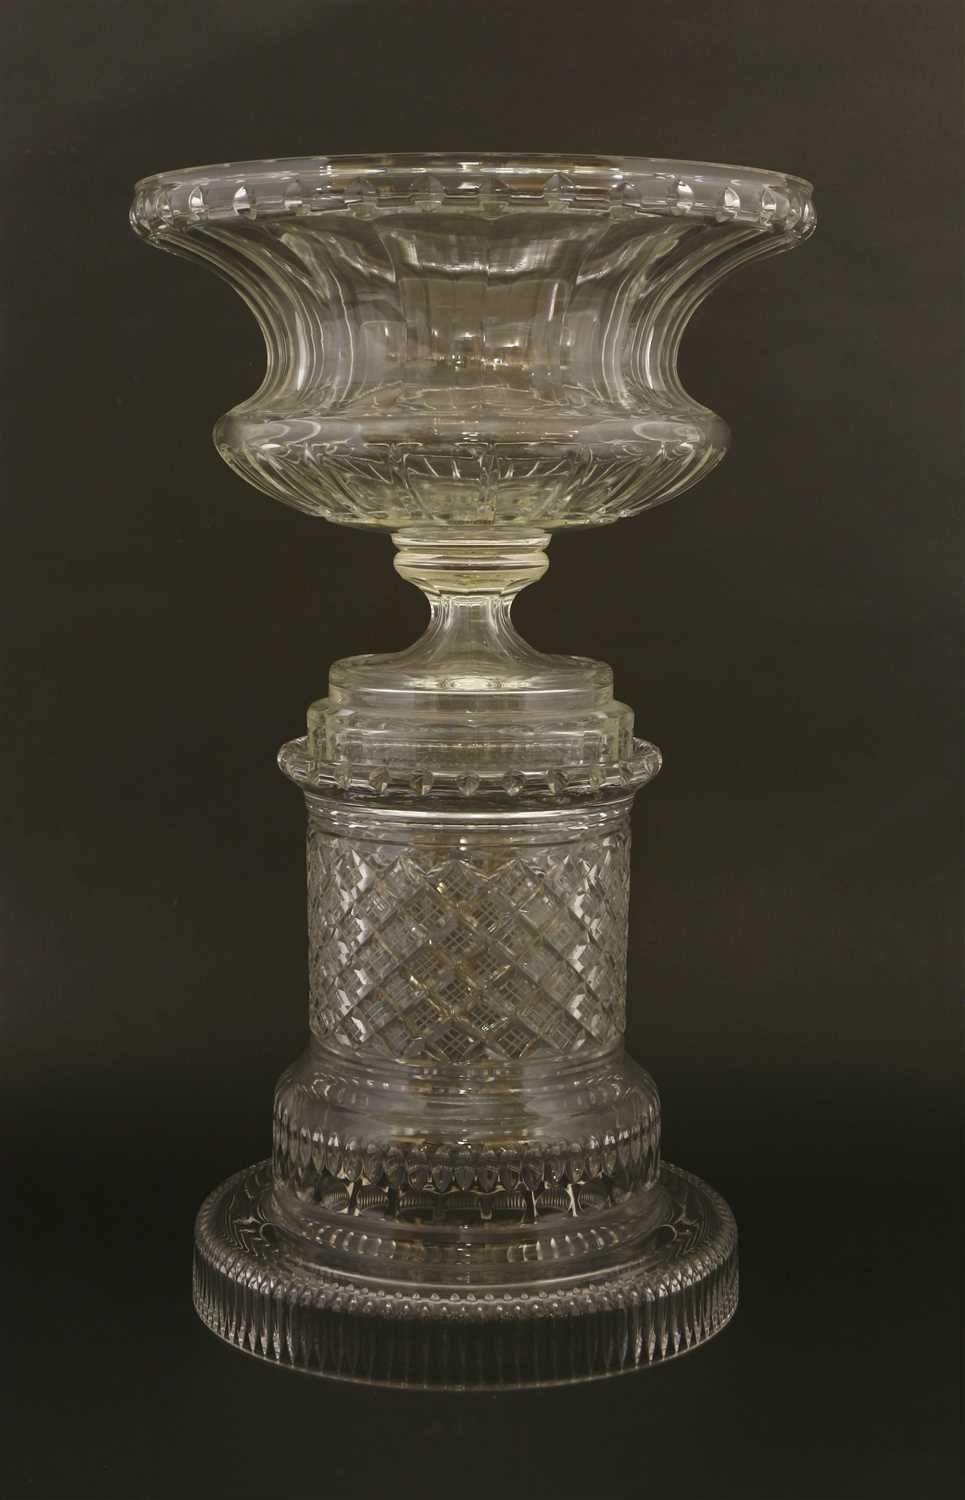 Lot 25-A William Yeoward cut-glass centrepiece